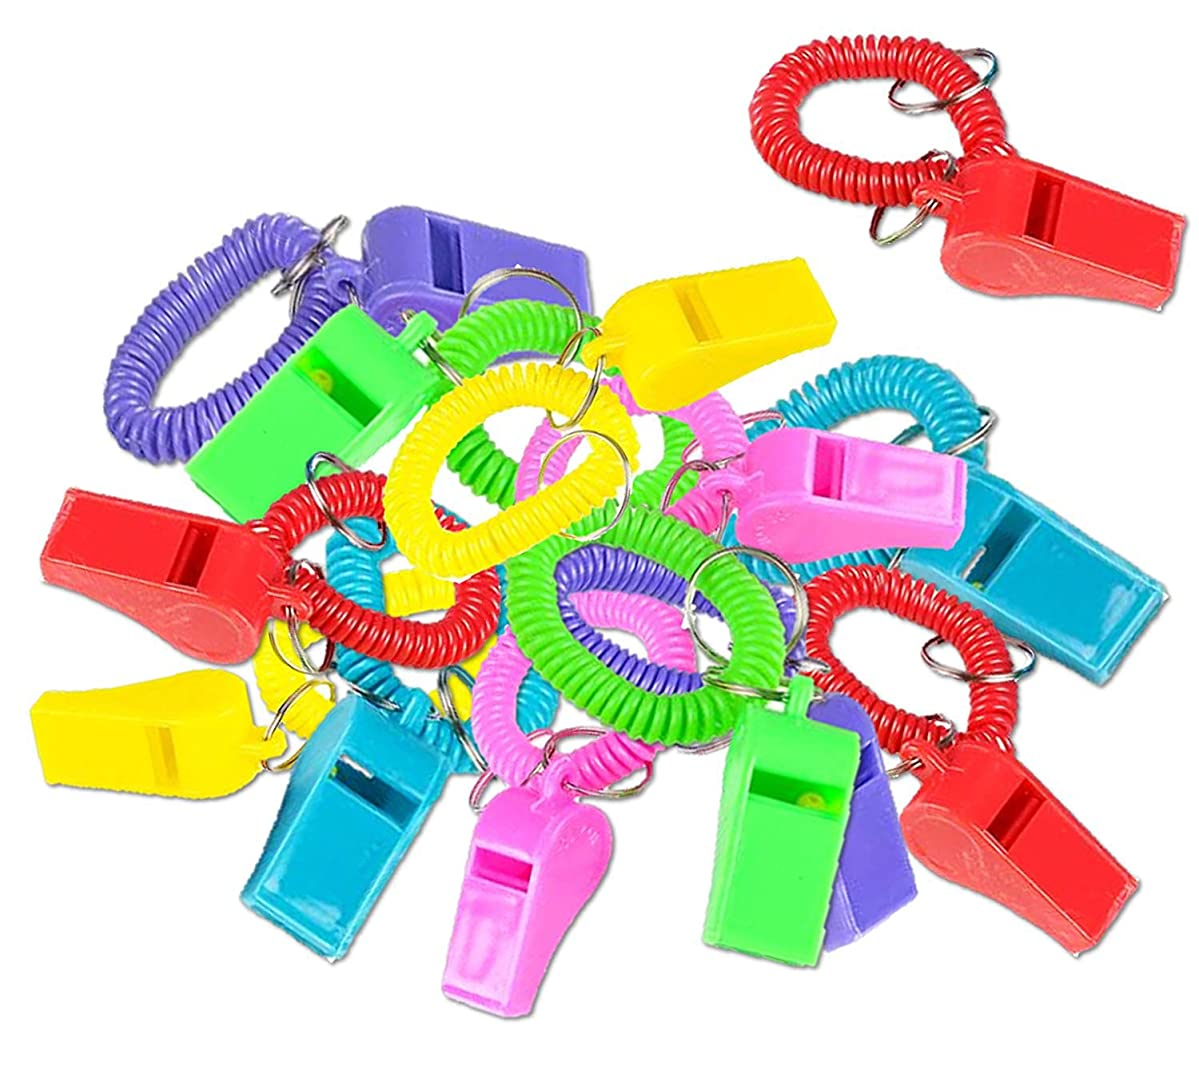 PlayO Whistle Spiral Bracelets with Keychain - Pack of 12 Colorful Party Whistle Bracelets